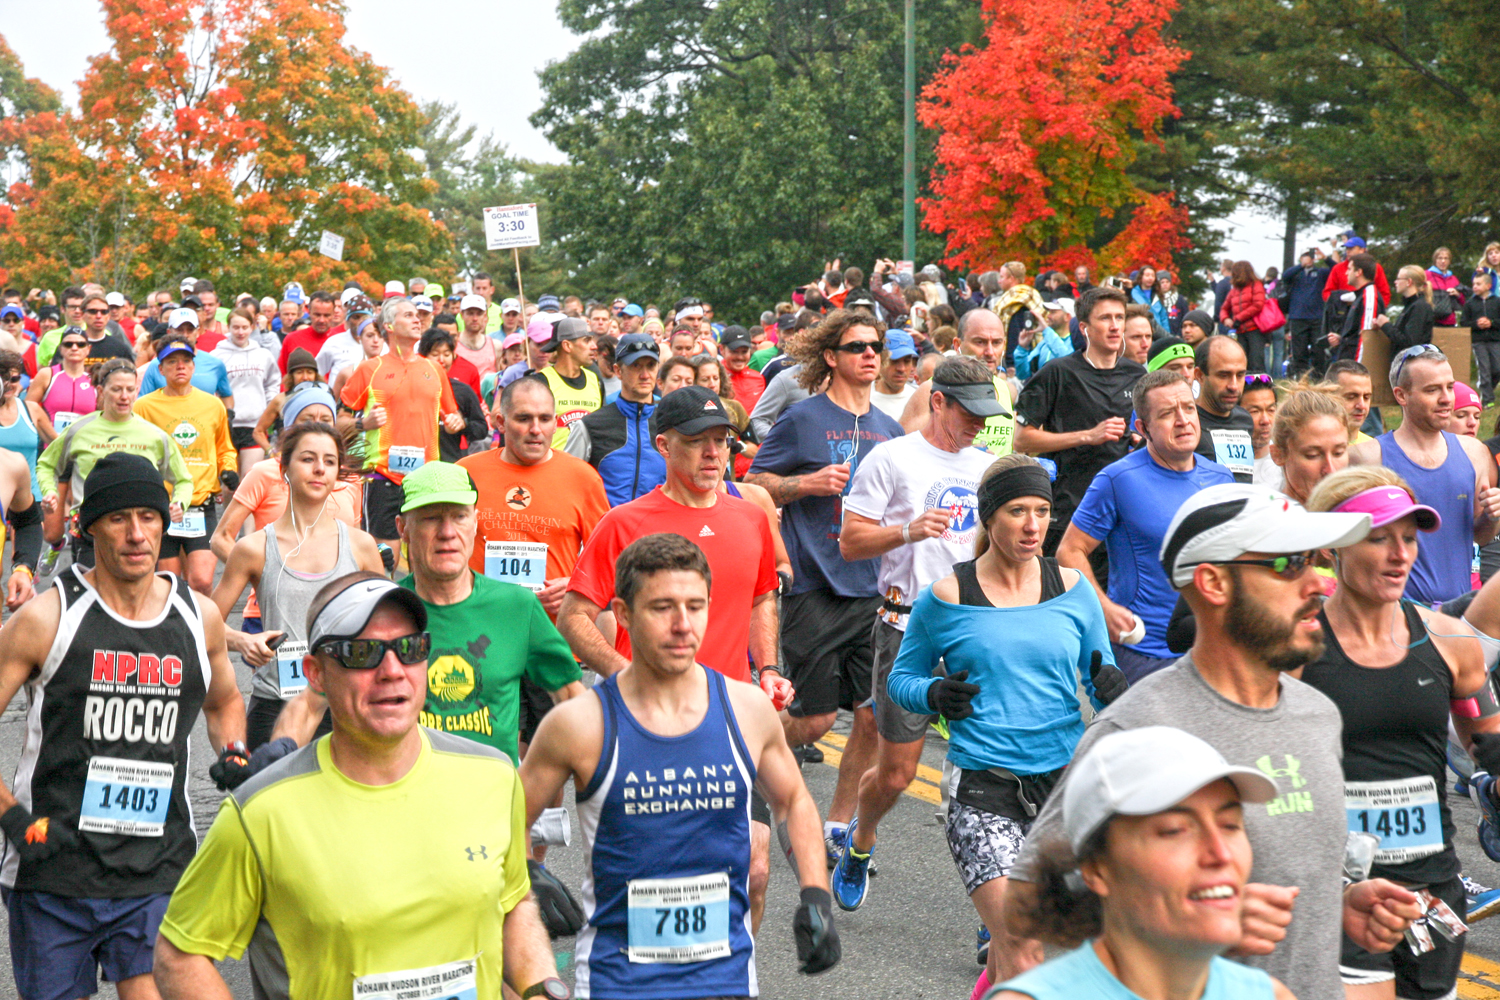 They're off at the 2015 Mohawk Hudson River Marathon. Bill Meehan